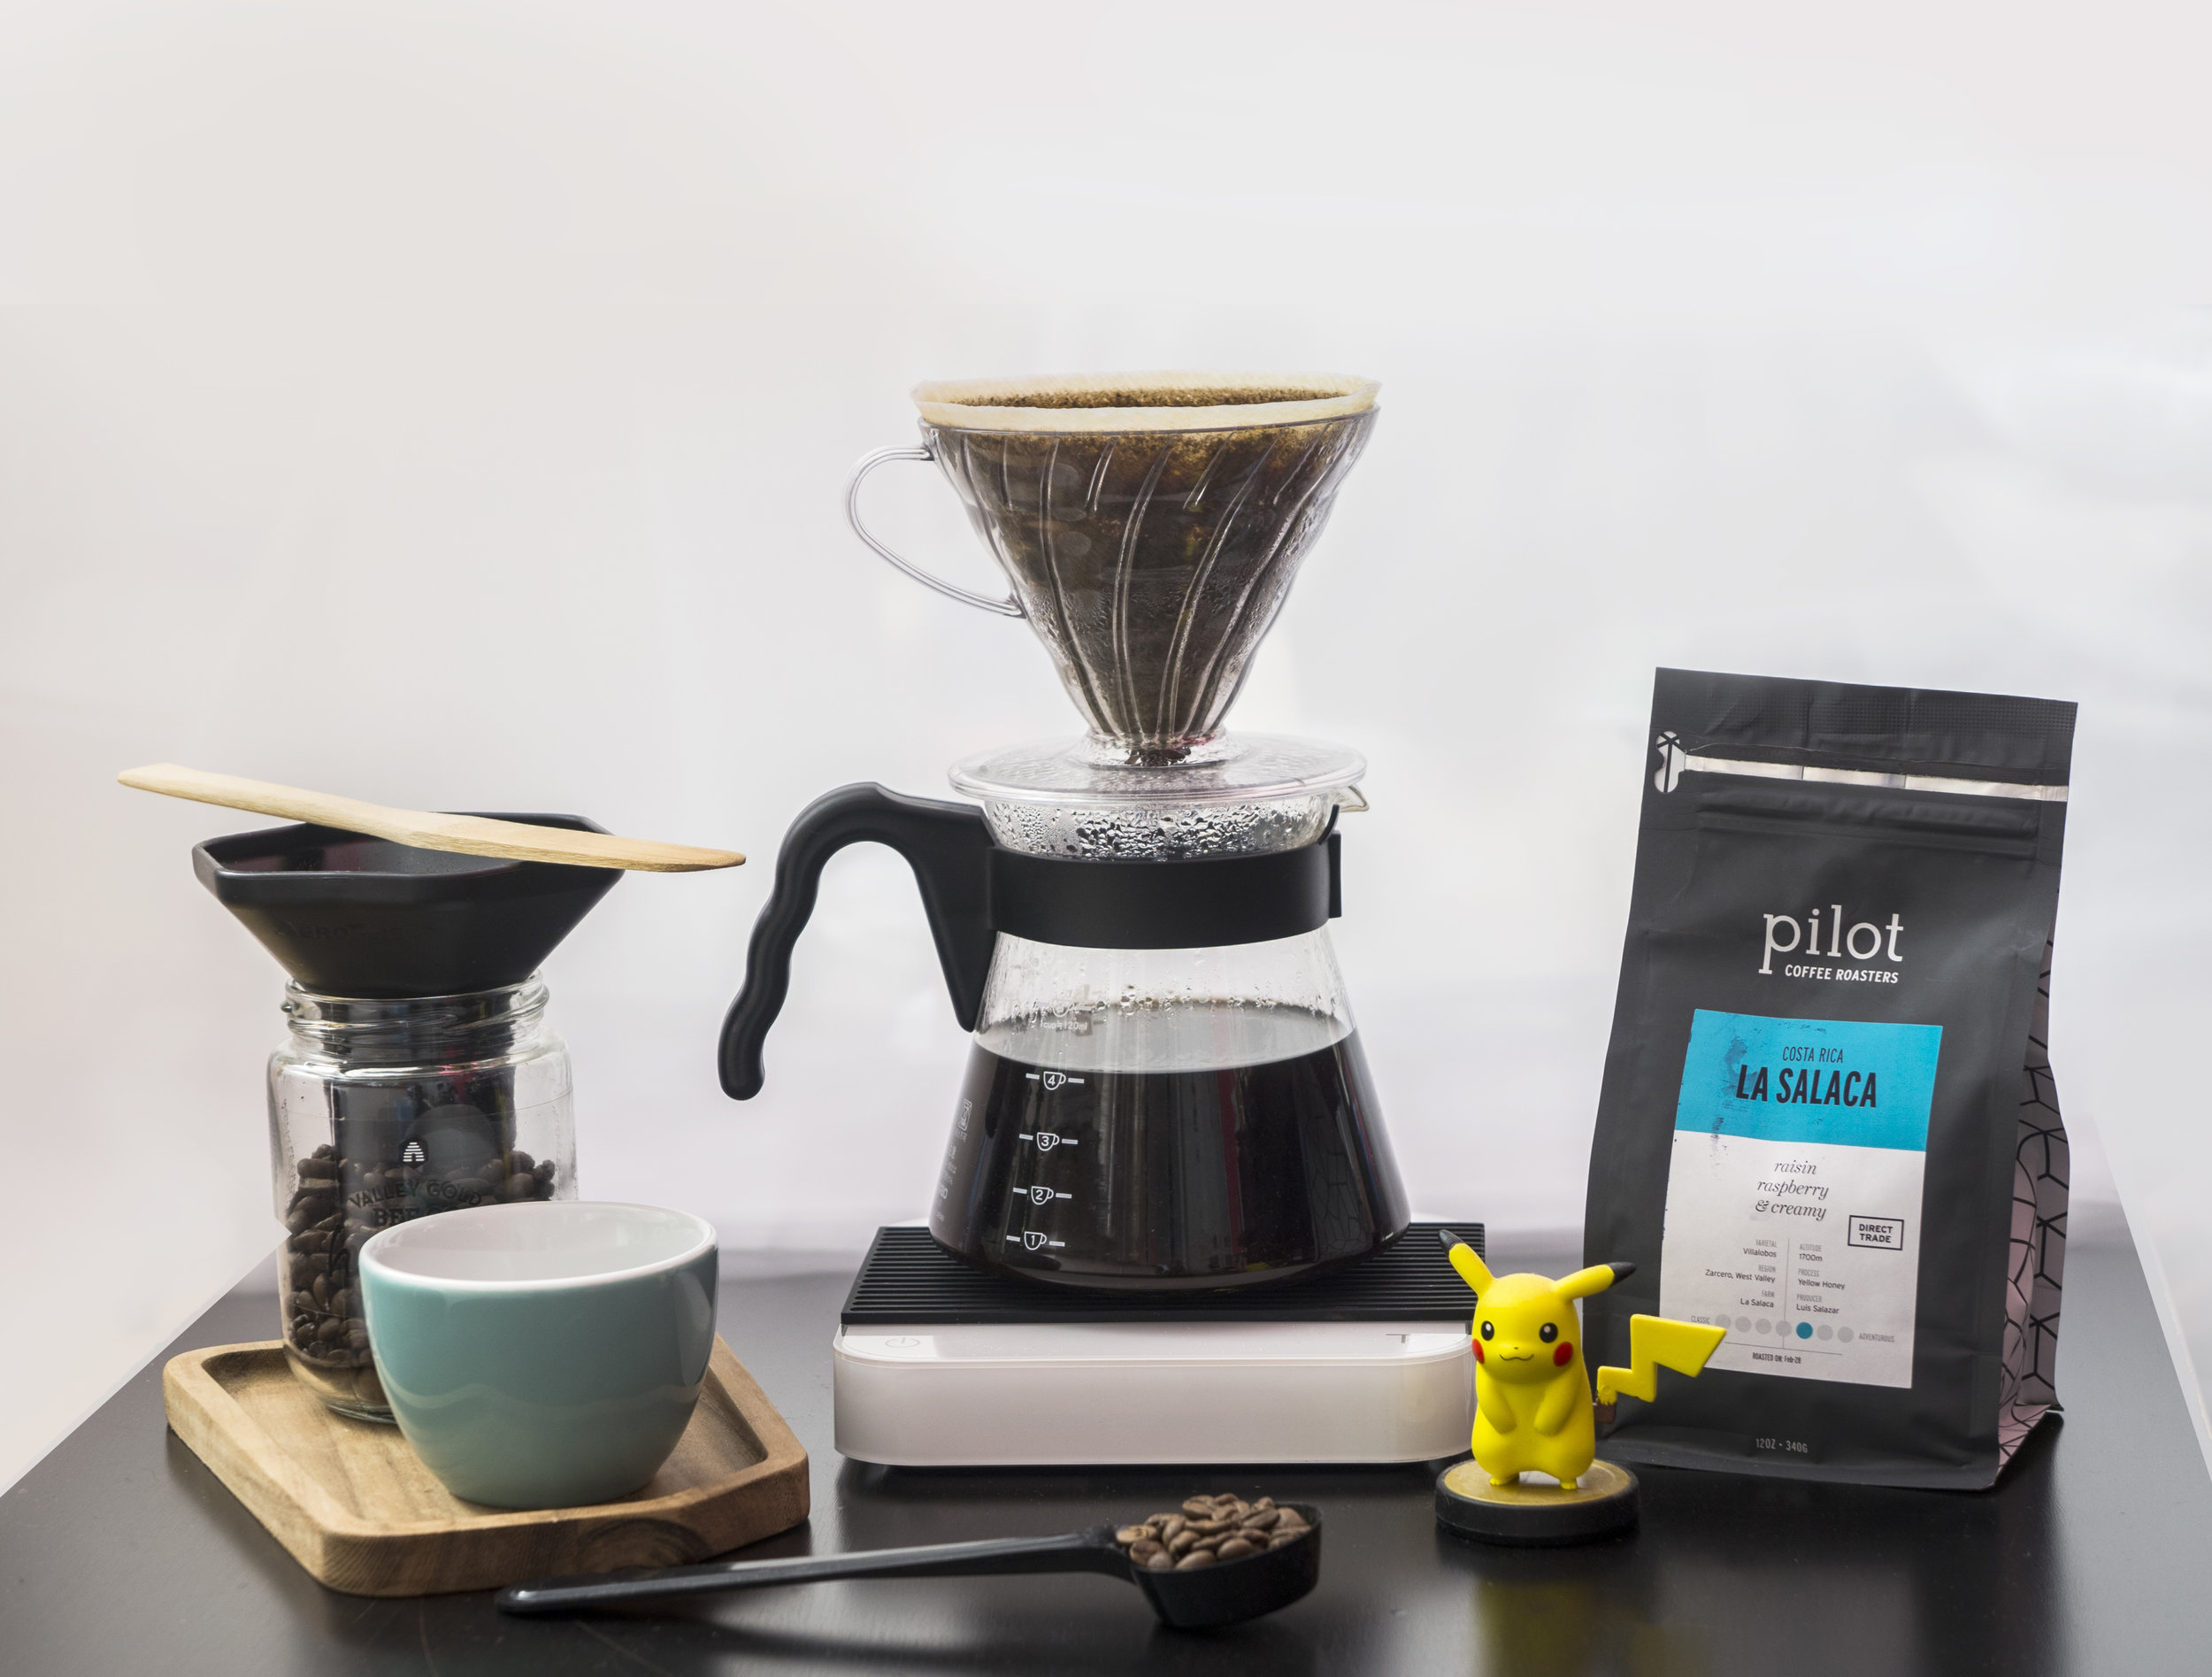 Making coffee at home with Pilot beans